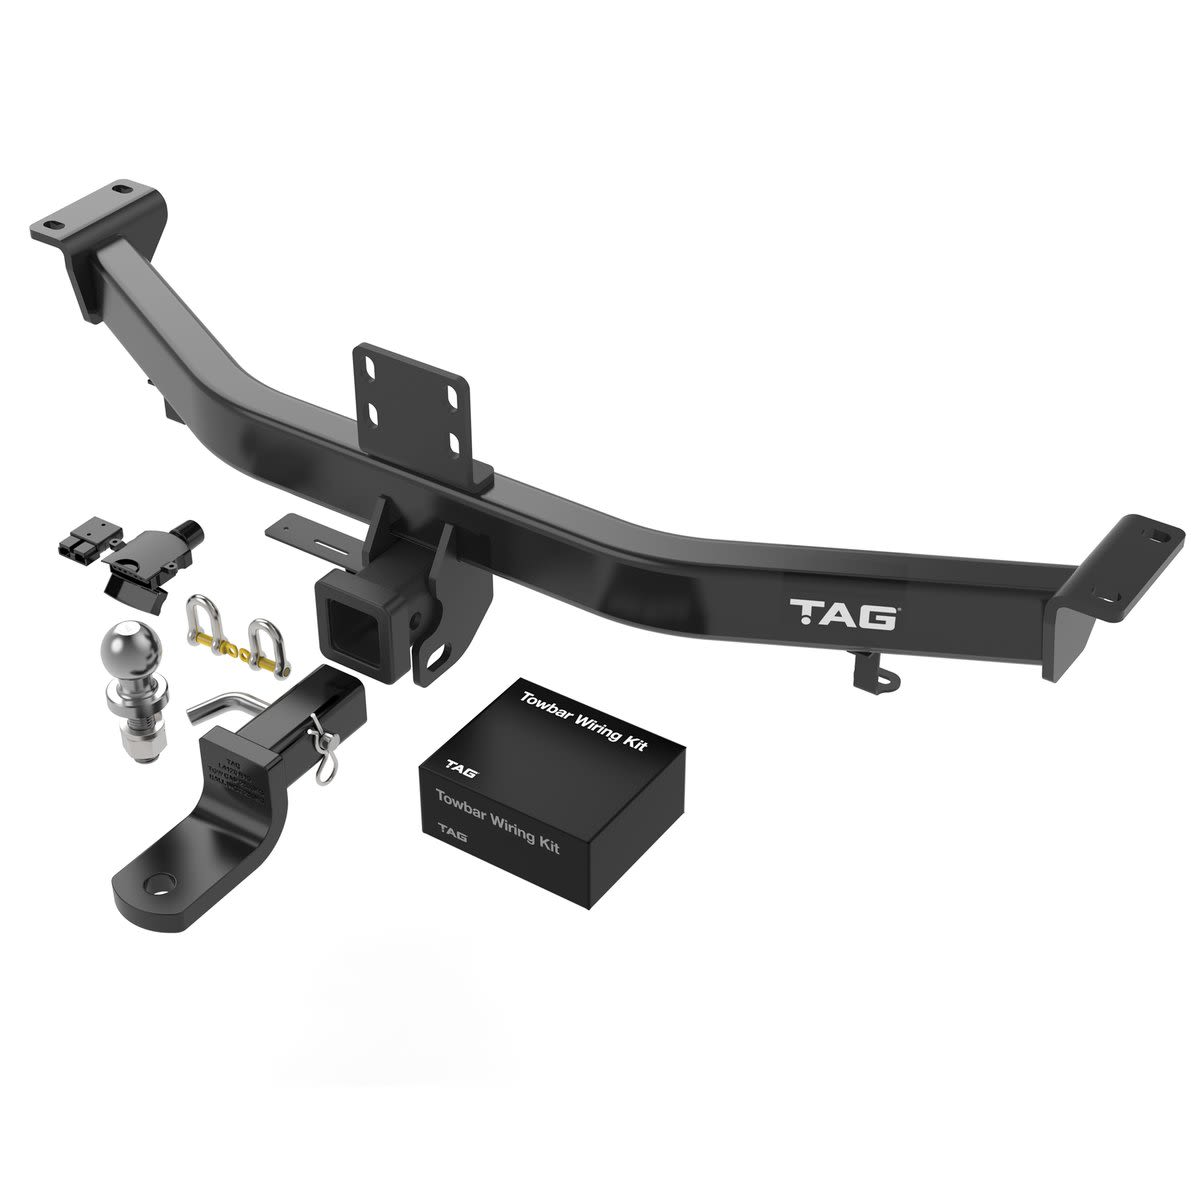 TAG Heavy Duty Towbar to suit Lexus LX (03/1998 - 10/2007), Toyota Landcruiser (03/1998 - 10/2007) - Direct Fit Bypass Wiring Harness